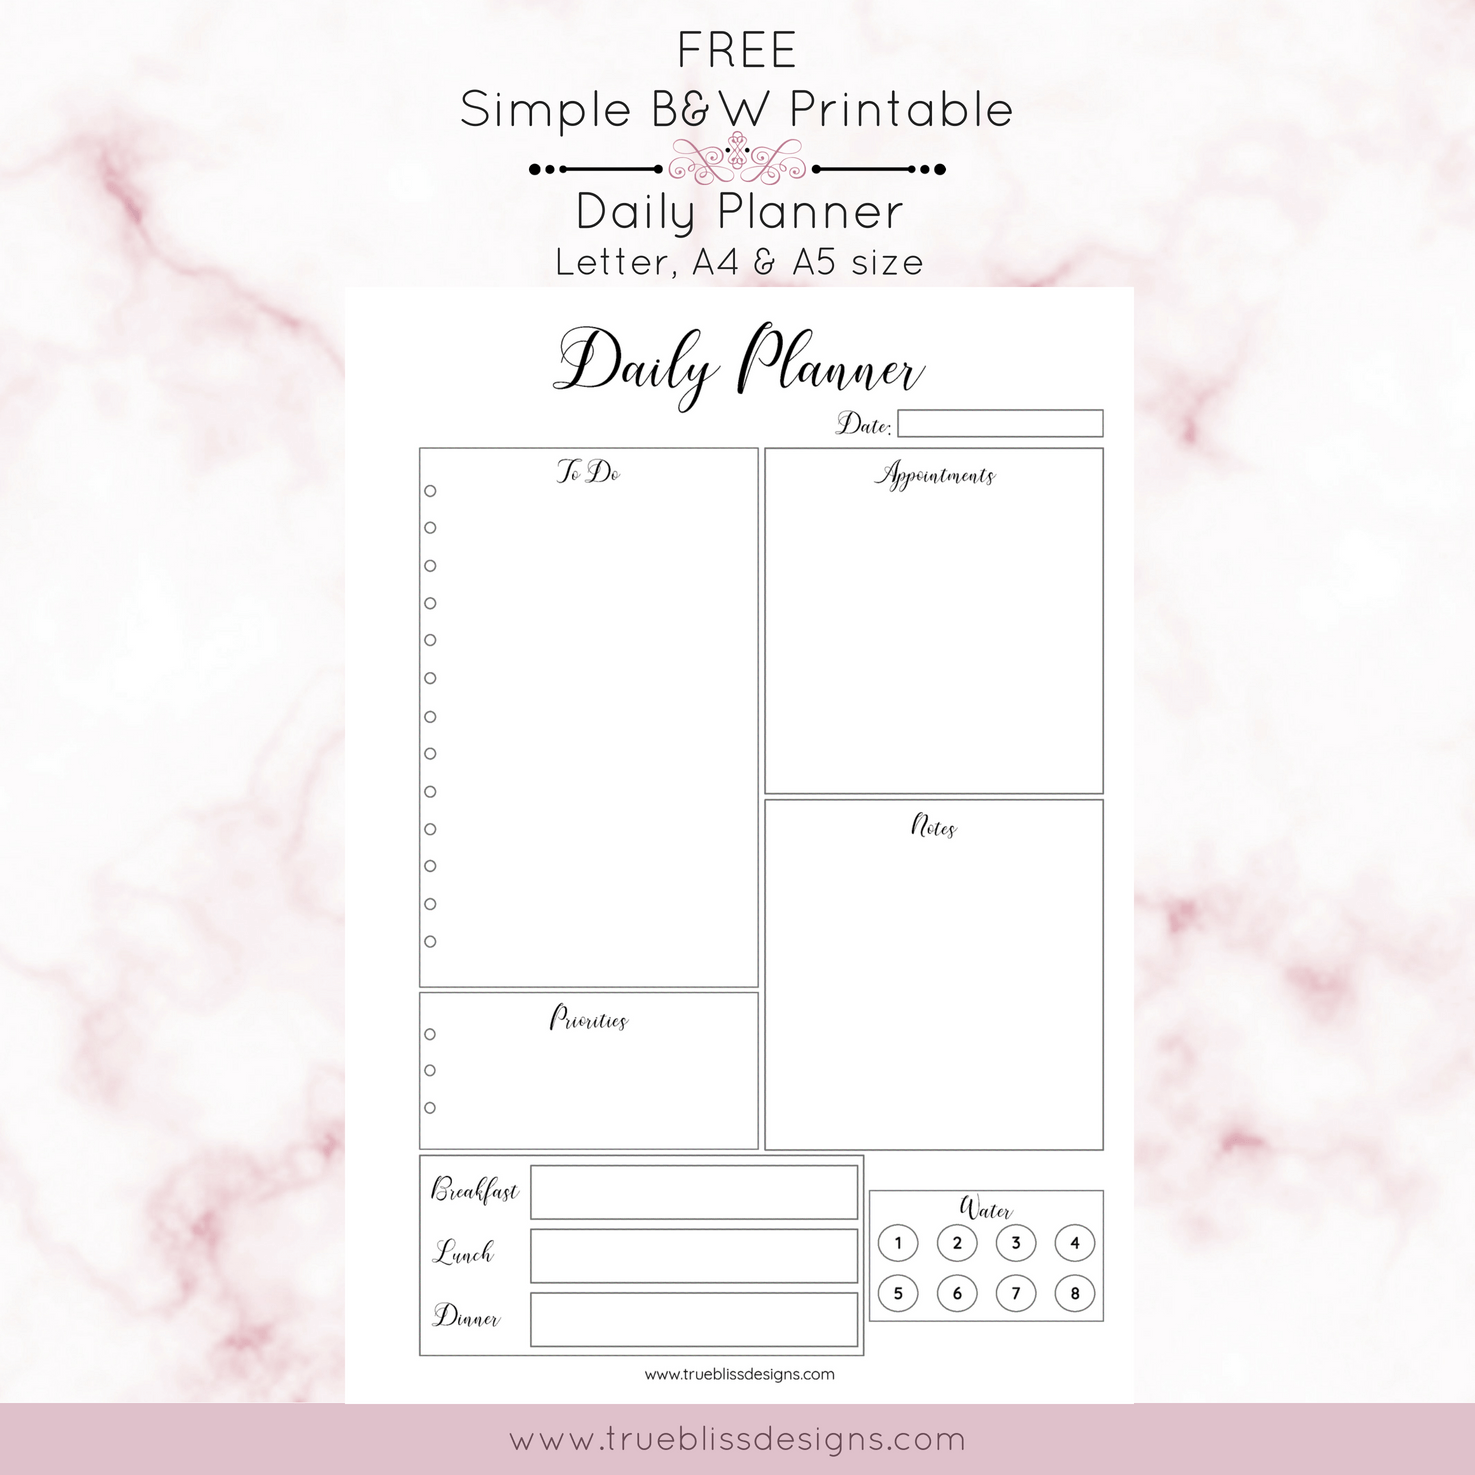 photograph regarding A5 Planner Printables called Very simple Black and White Printable Planners - Legitimate Bliss Models